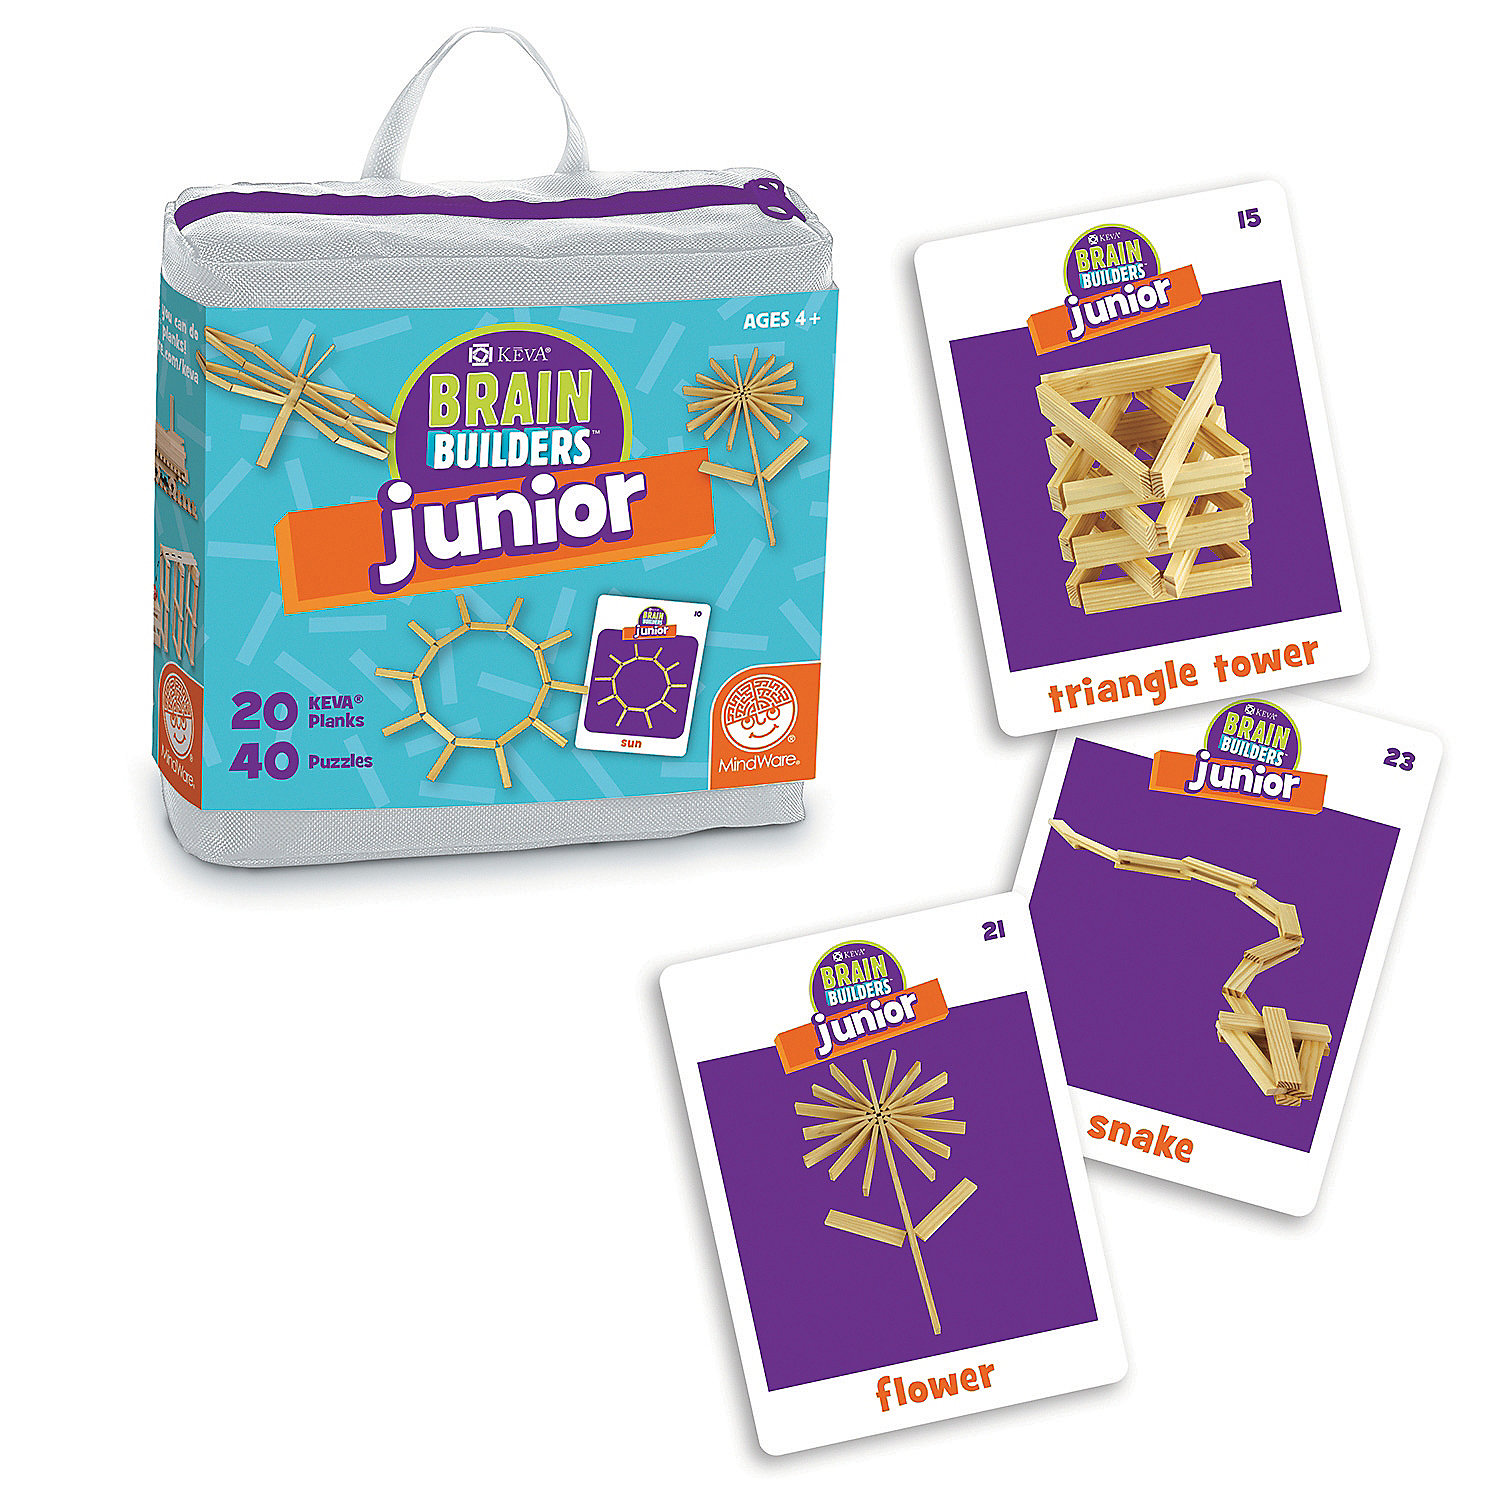 brain builders junior cards.jpeg